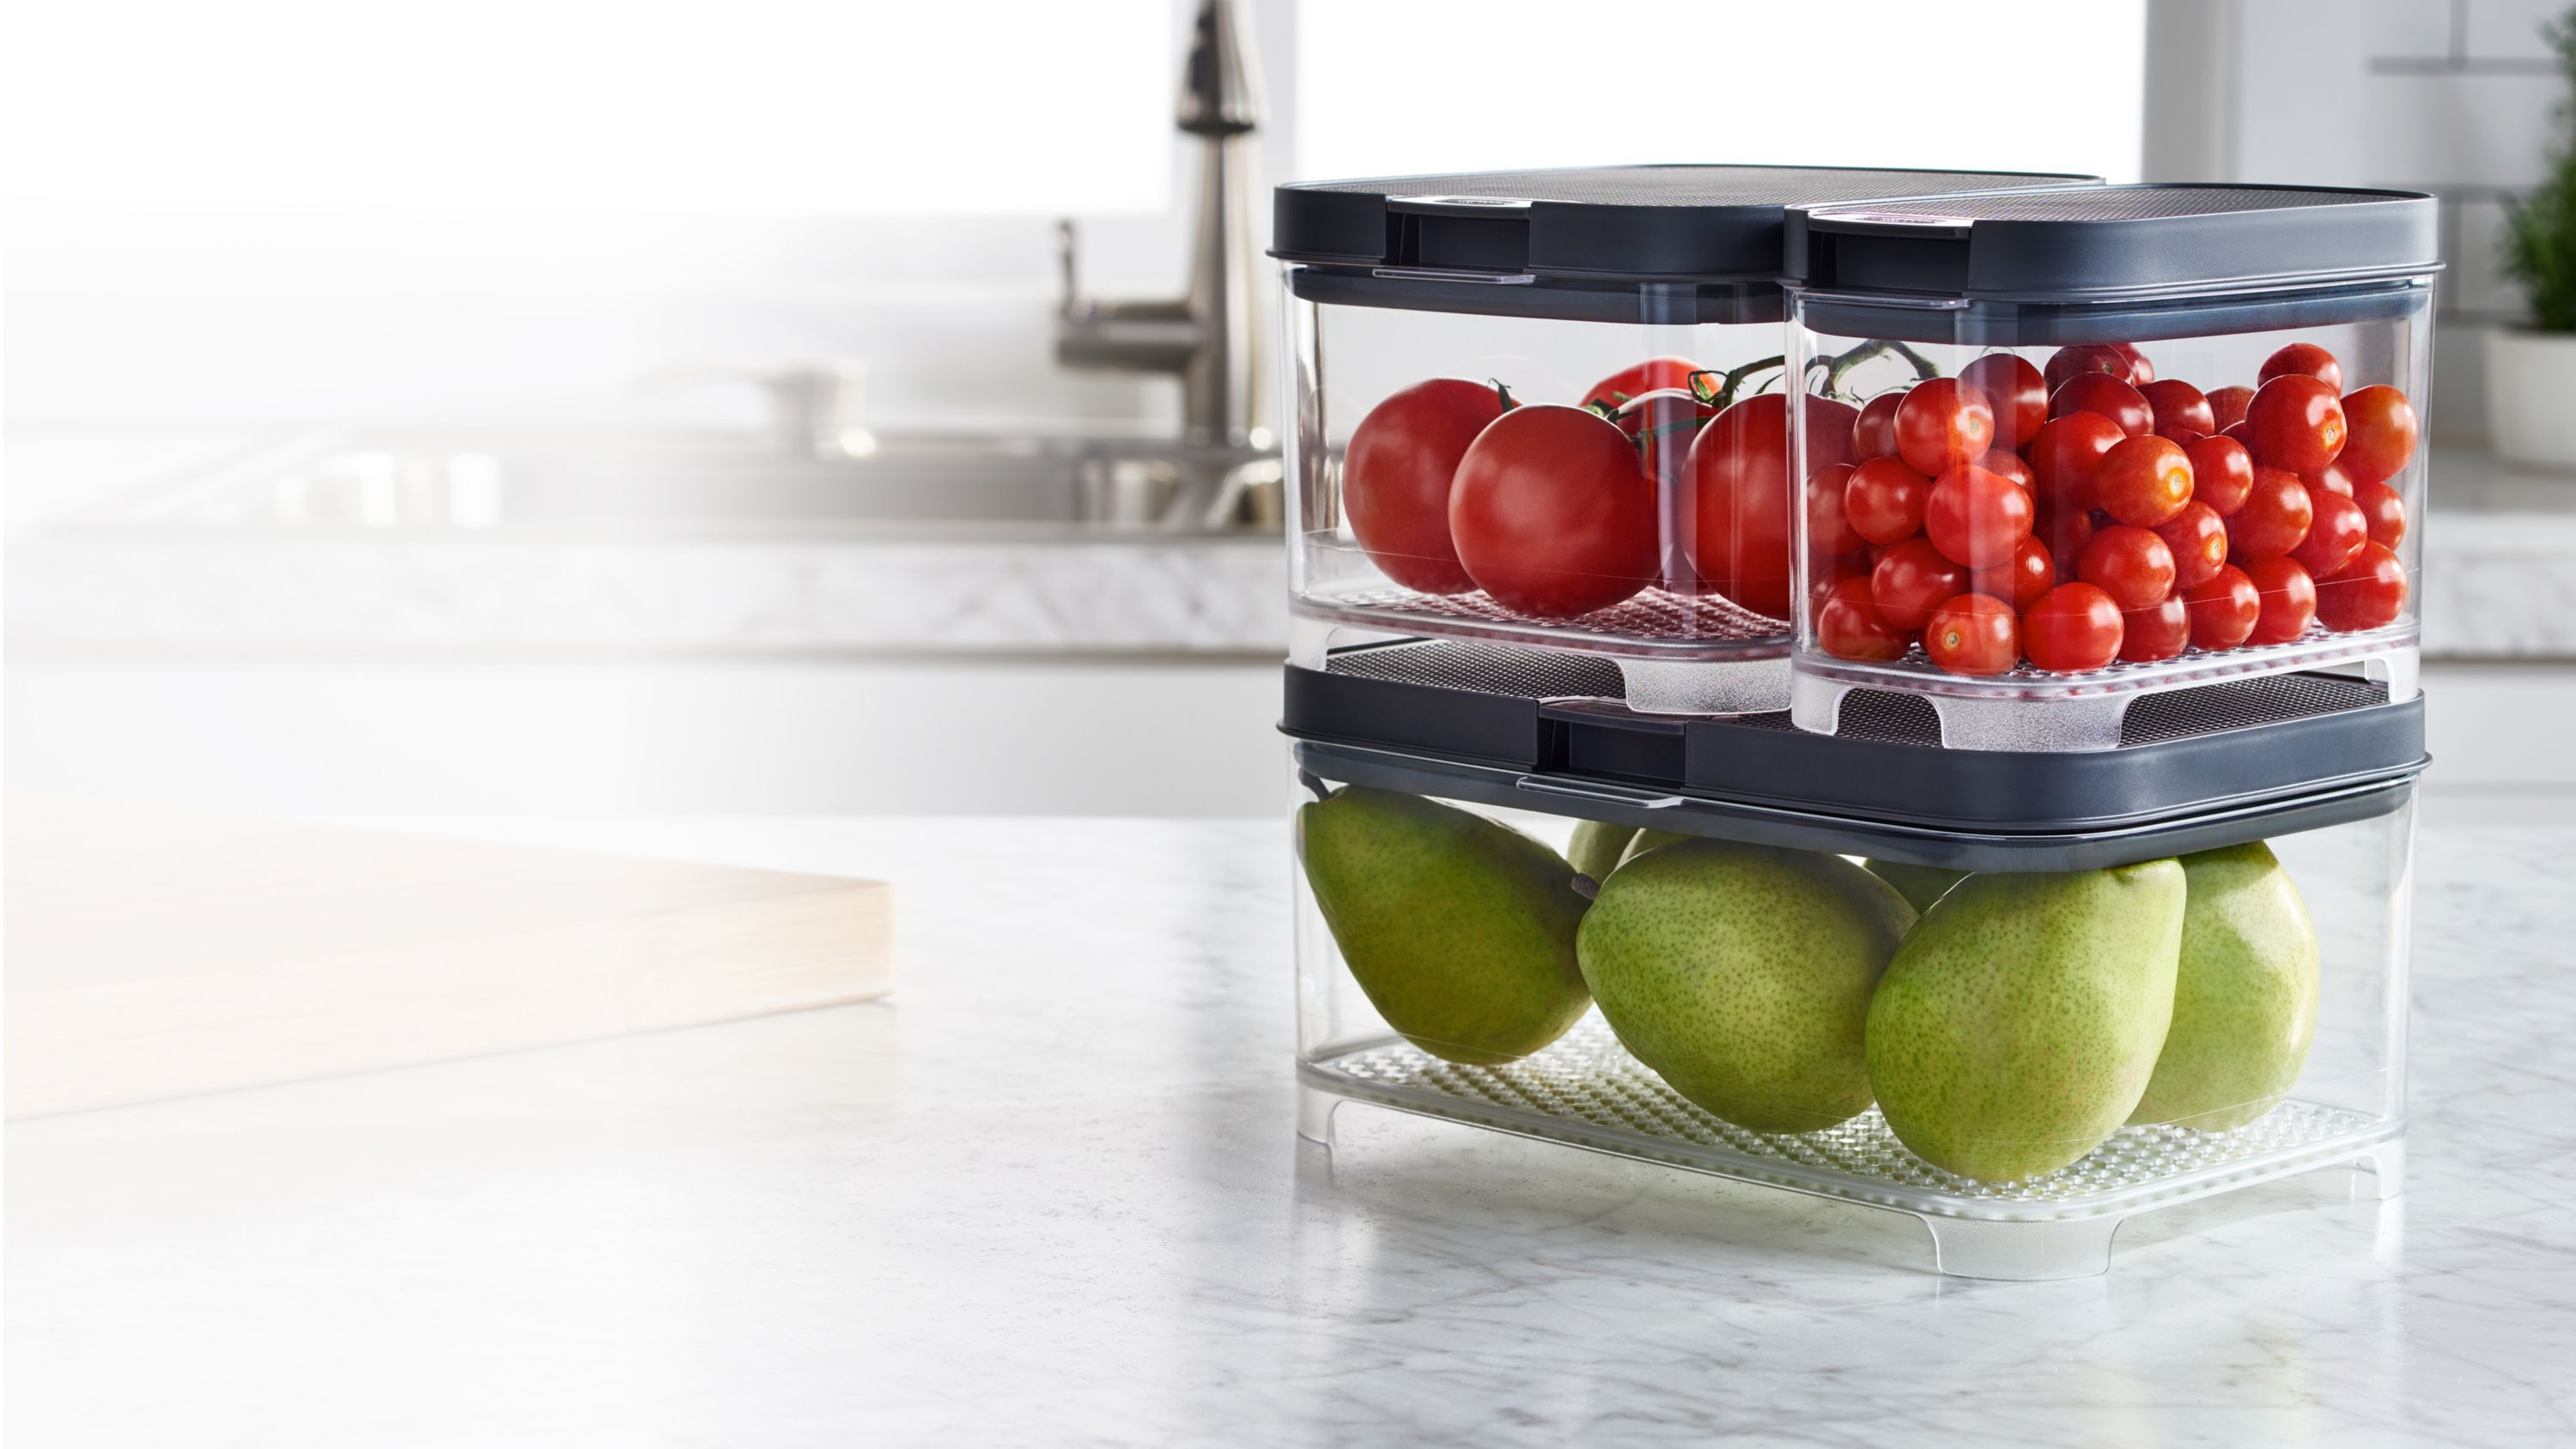 Rubbermaid FreshWorks countertop produce storage containers stacked